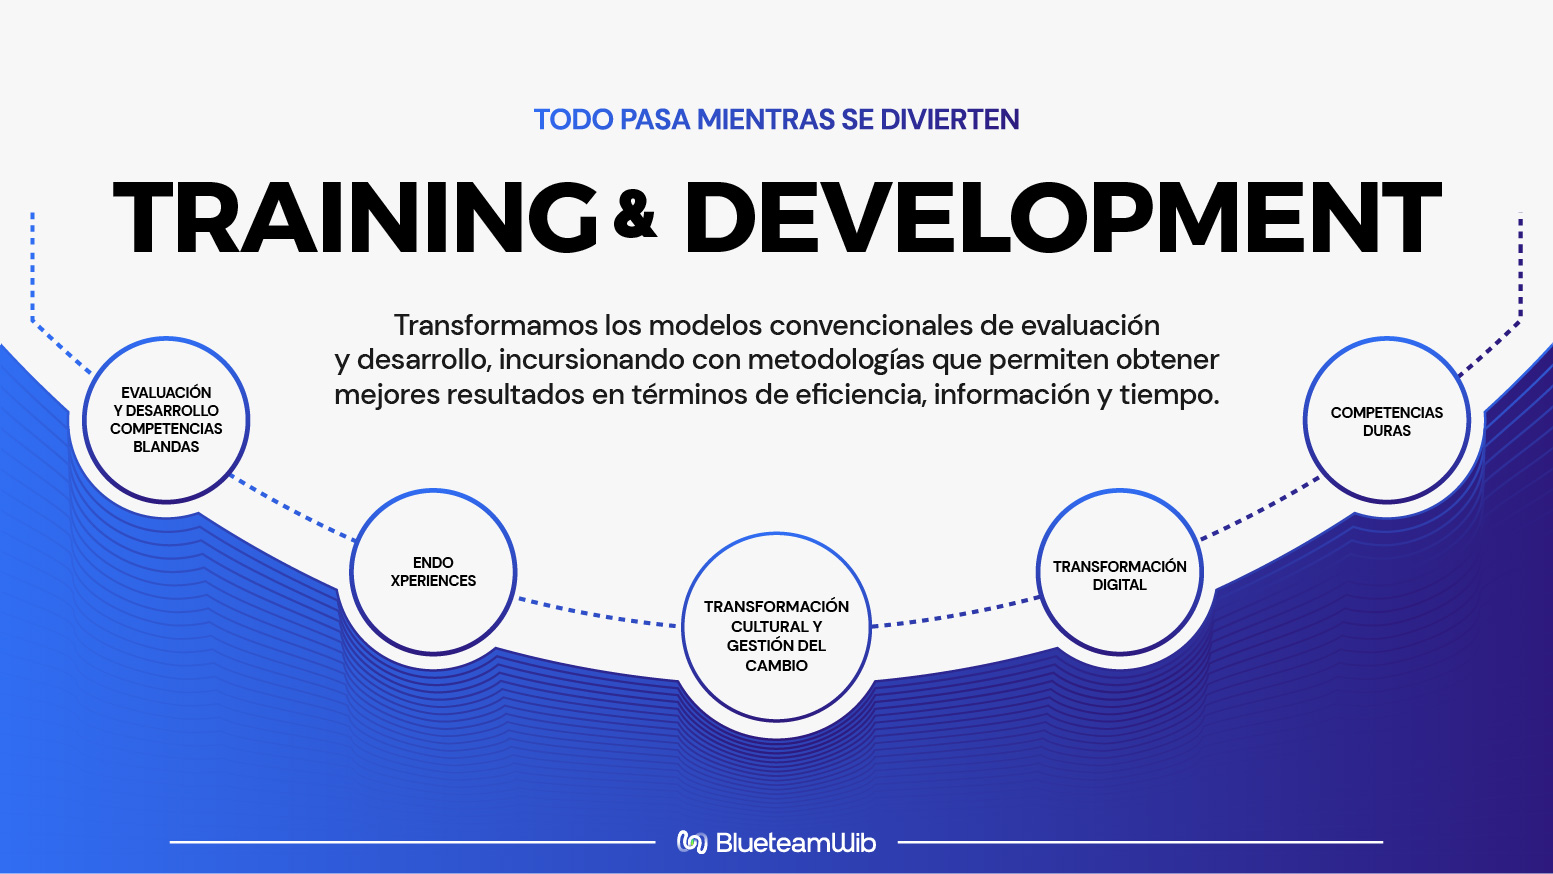 squeme-training-and-development